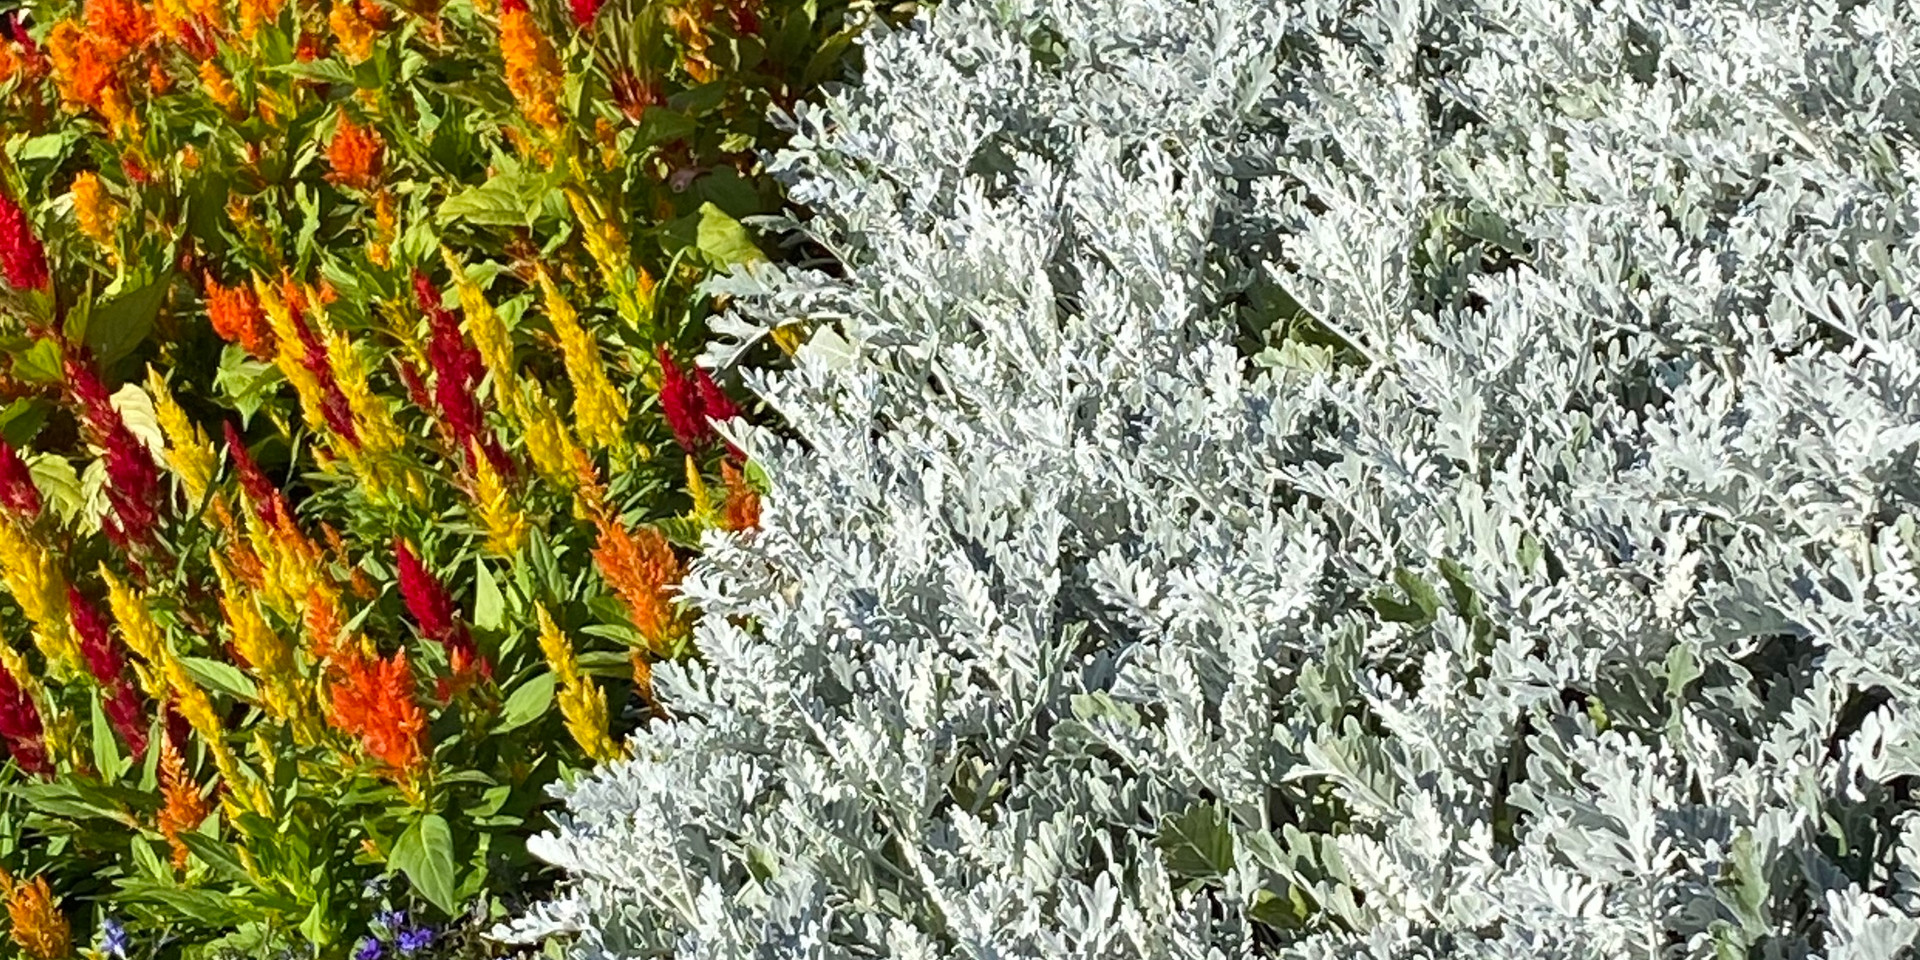 Celosia, Dusty Miller & more